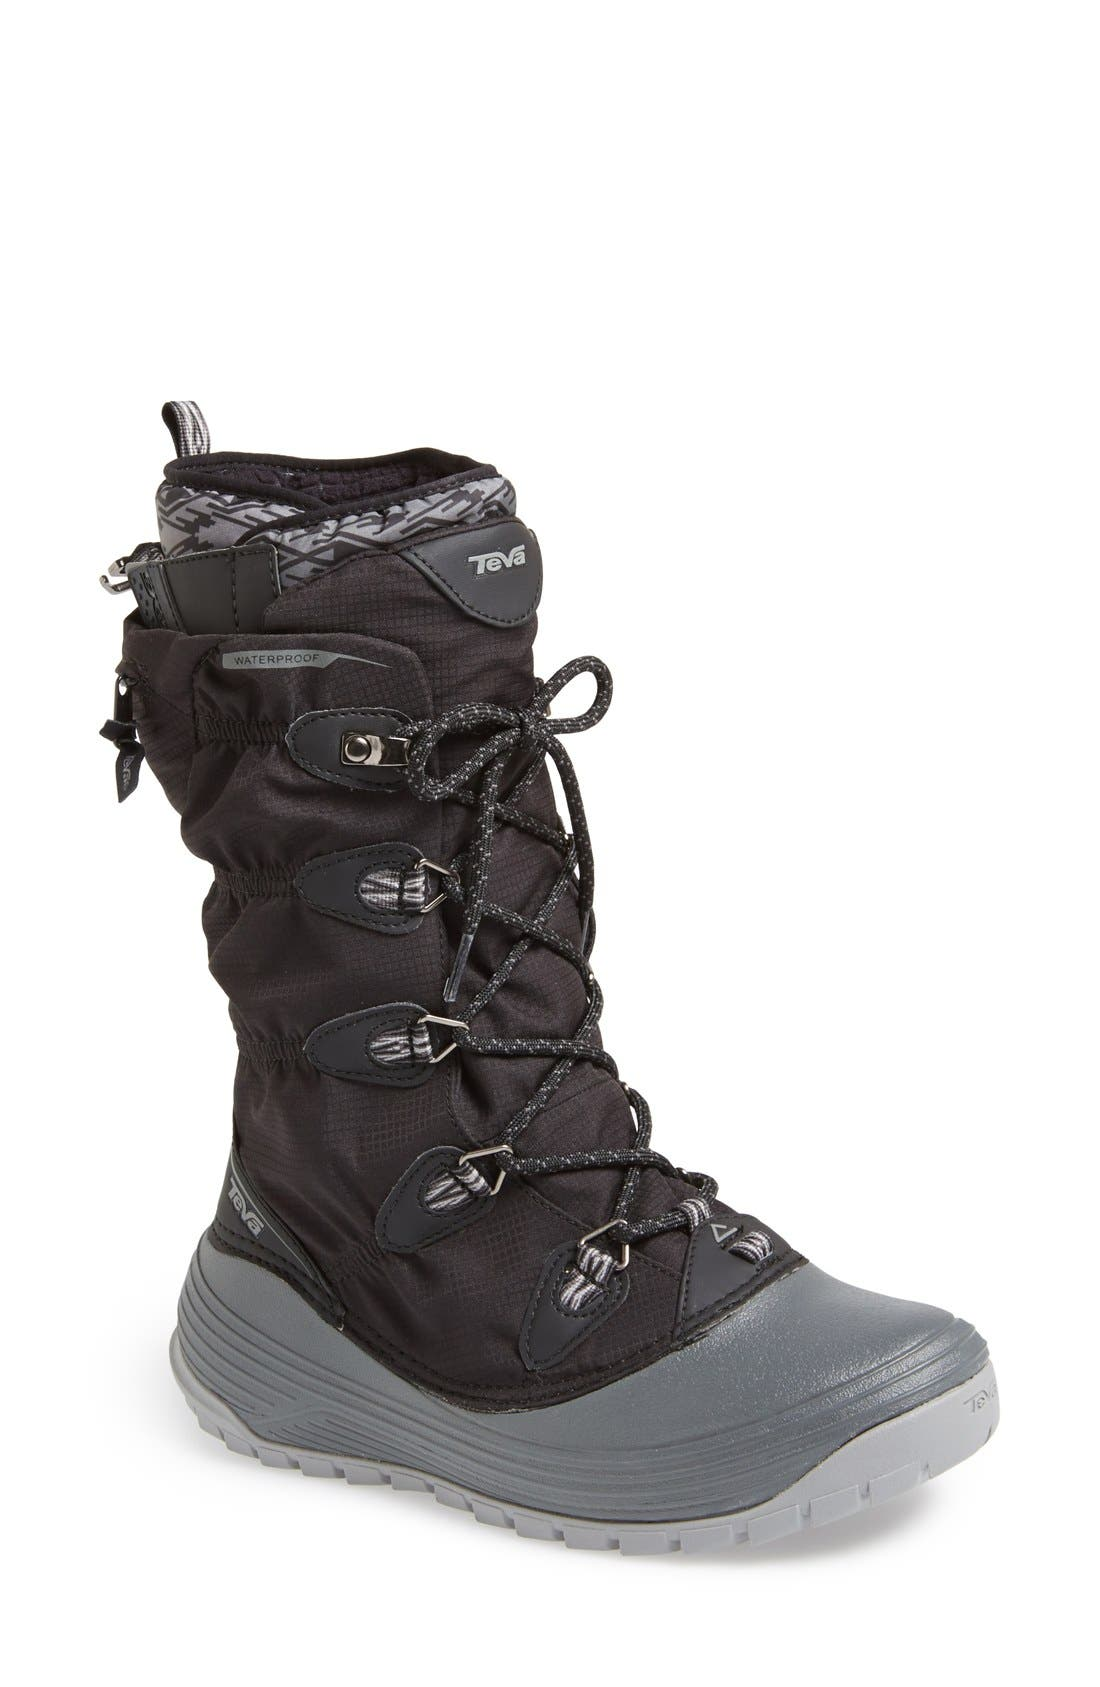 Main Image - Teva 'Jordanelle' Boot (Women)